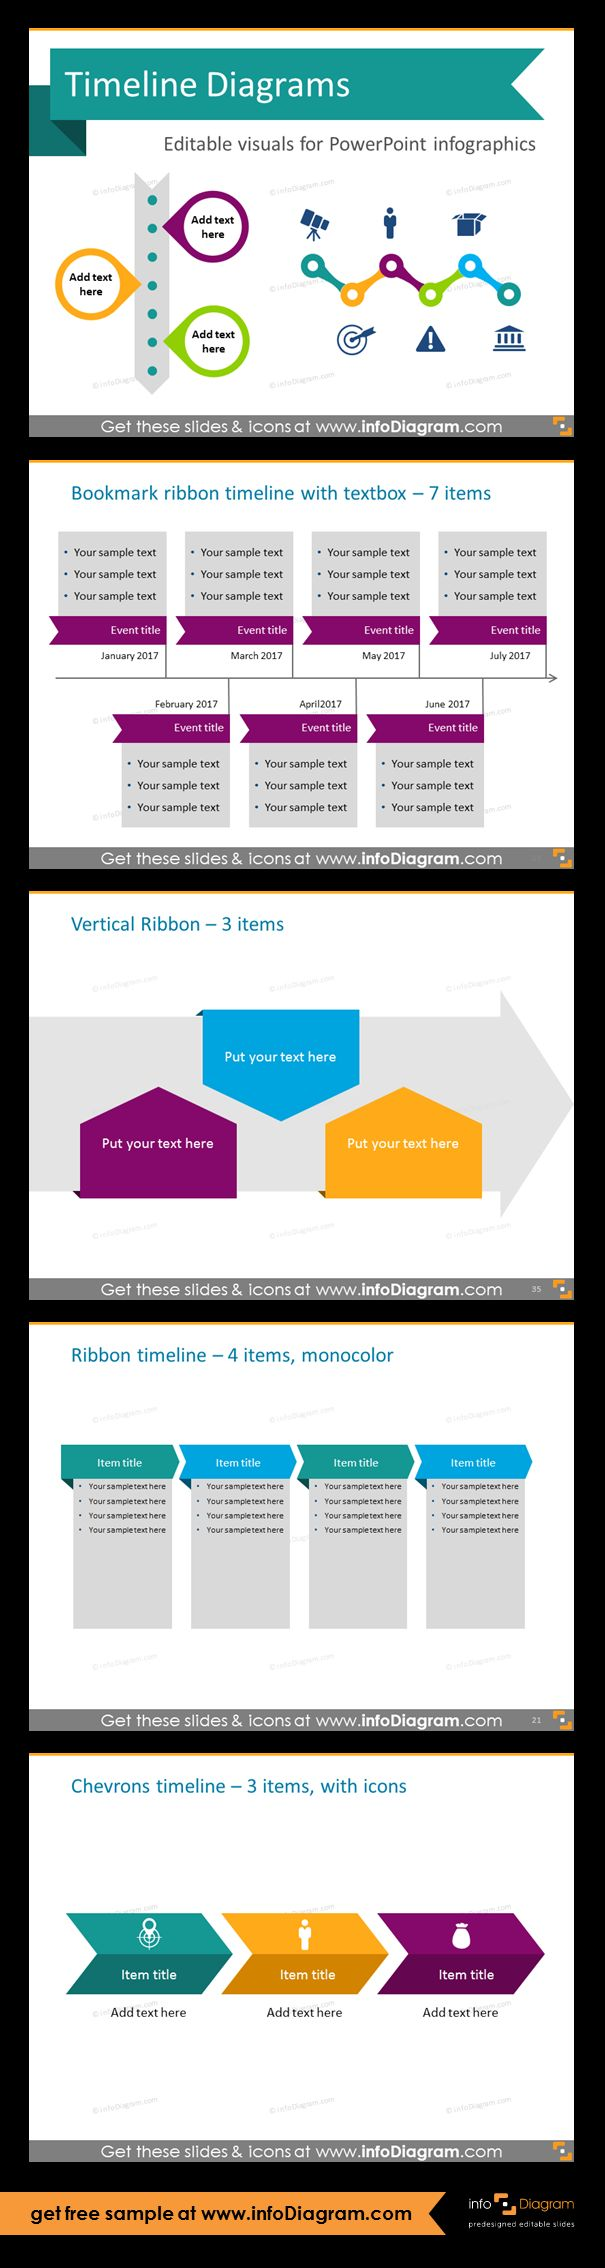 Template slides for Timeline diagrams and Time infographics. Editable PowerPoint graphics for showing history, agenda, linear process flow charts, project timelines, planning phases and roadmaps by modern infographics. Bookmark ribbon, vertical ribbon and chevrons timeline. Use these timeline charts in various document: review reports in Word docs, project reviews and planning presentations or in Excel along calendar tables to show deadlines.